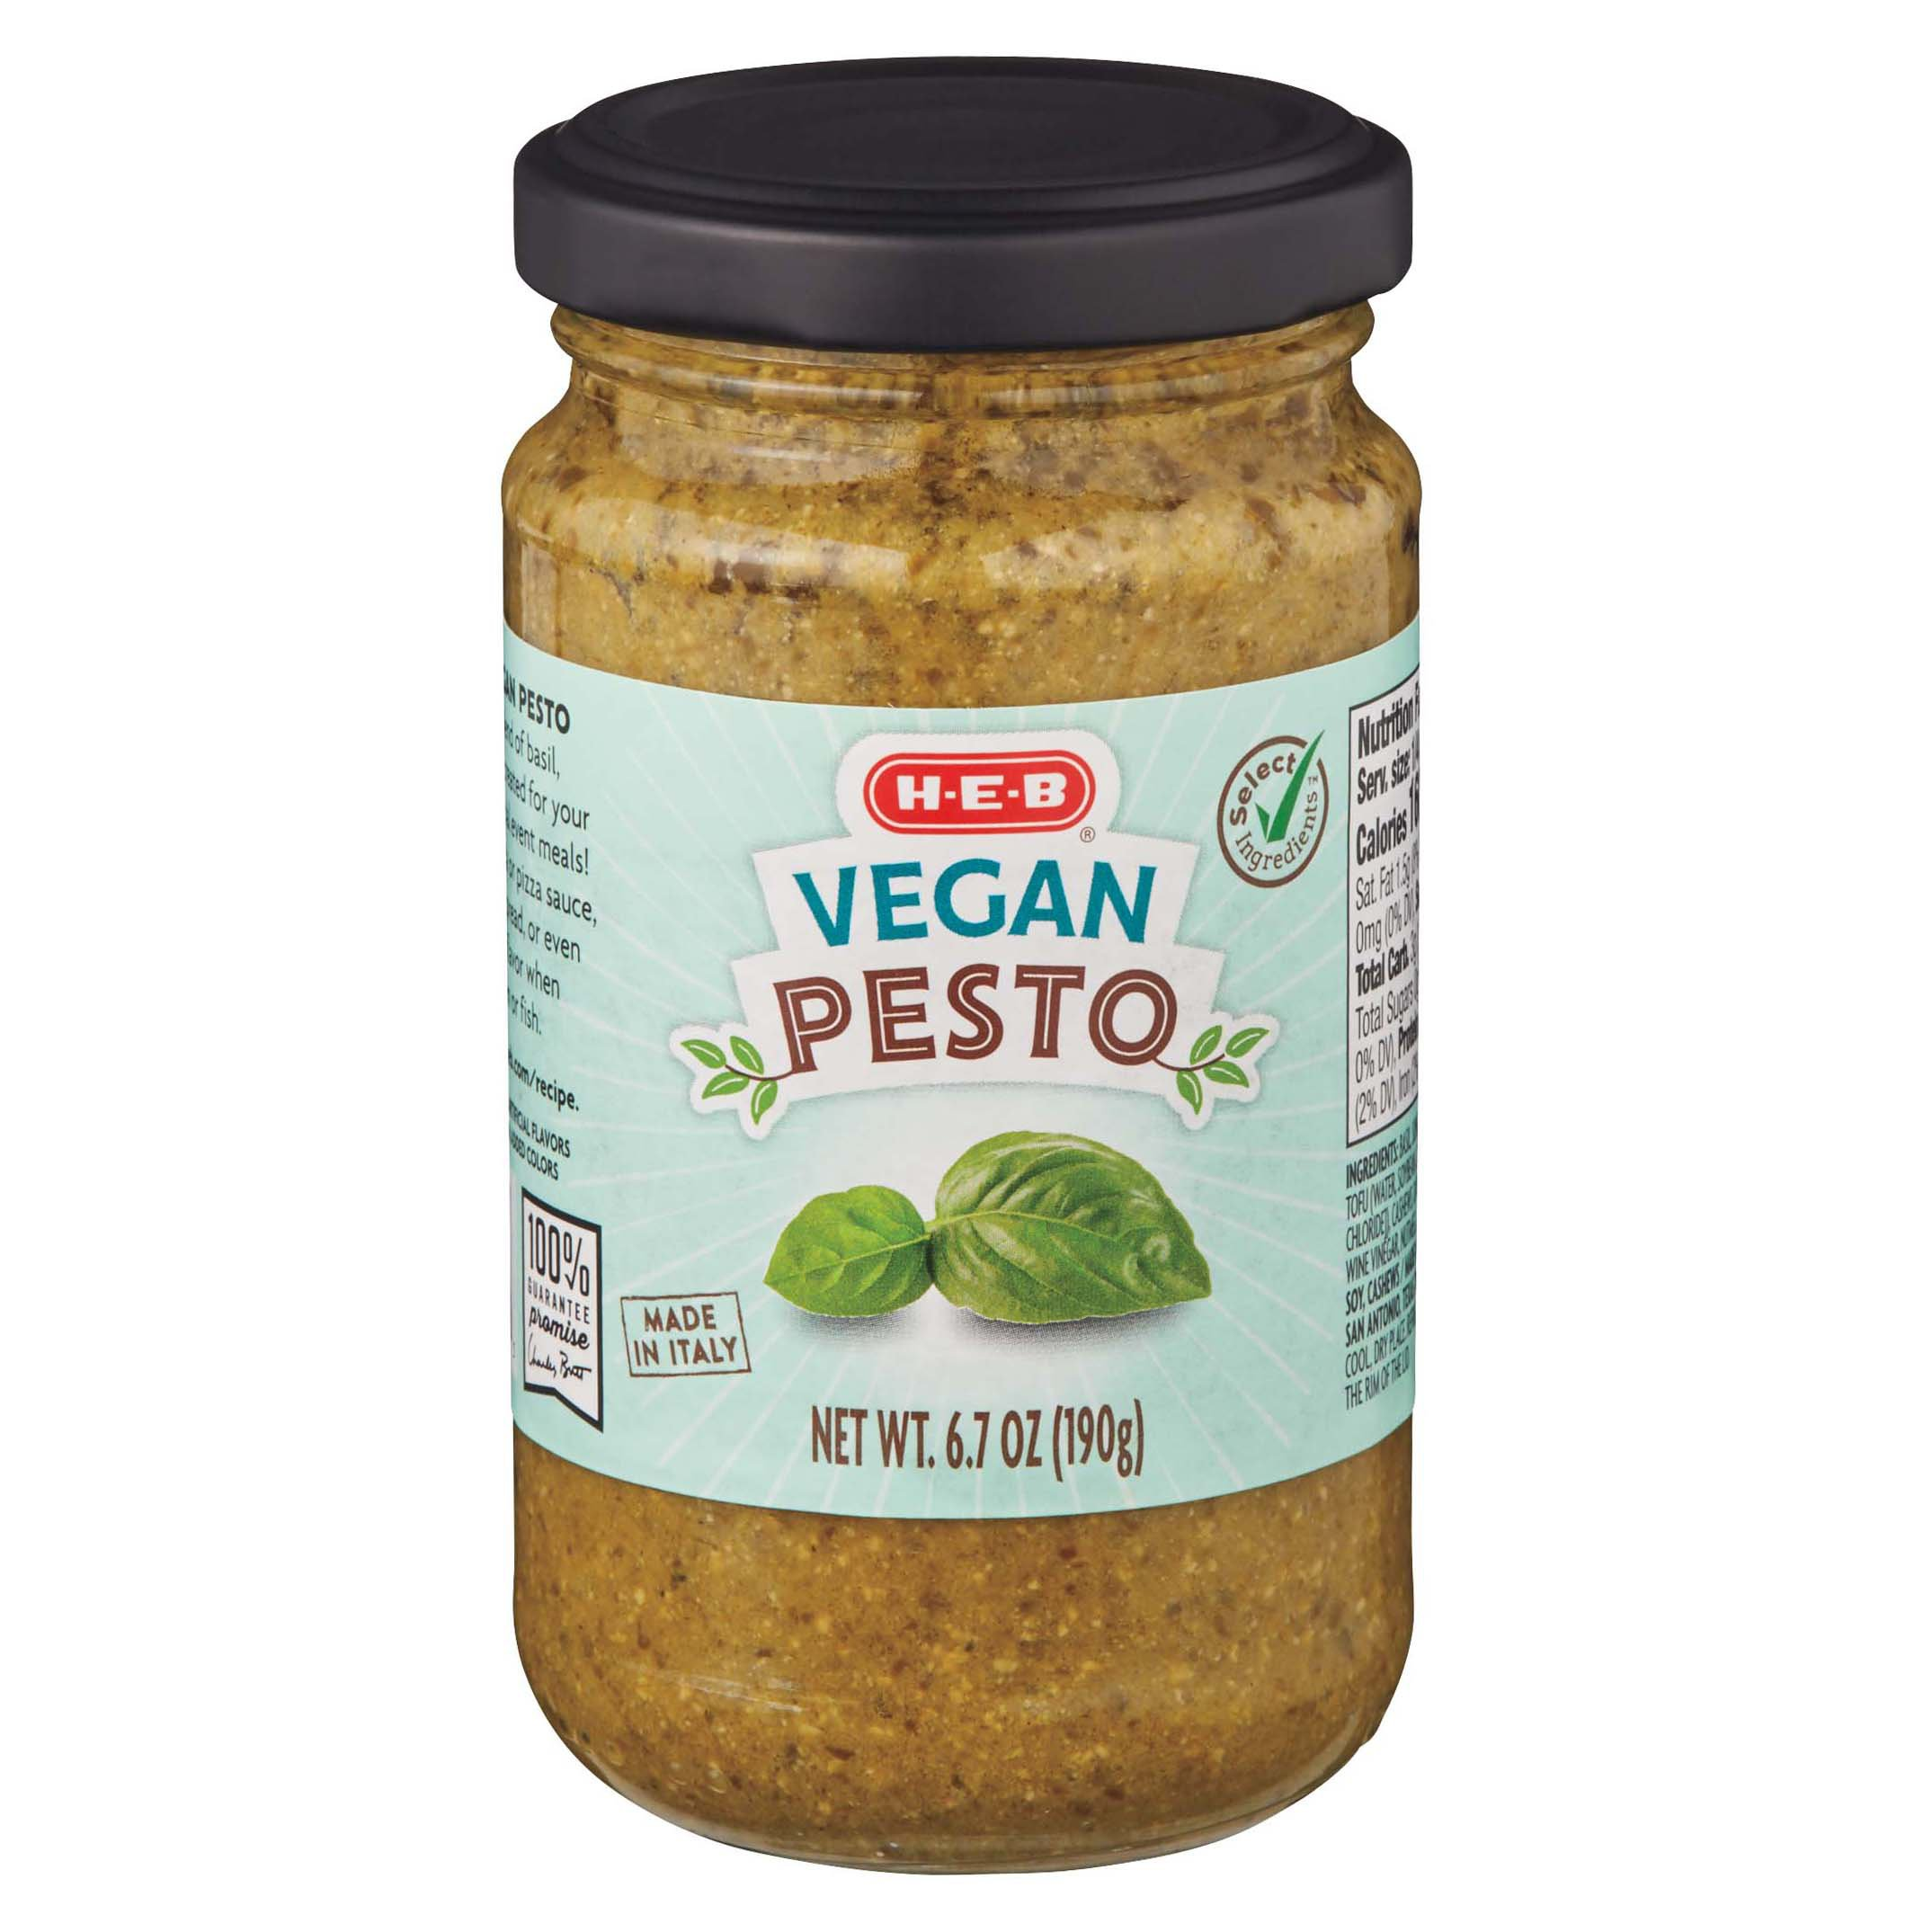 H E B Select Ingredients Vegan Pesto Shop Pasta Sauces At H E B